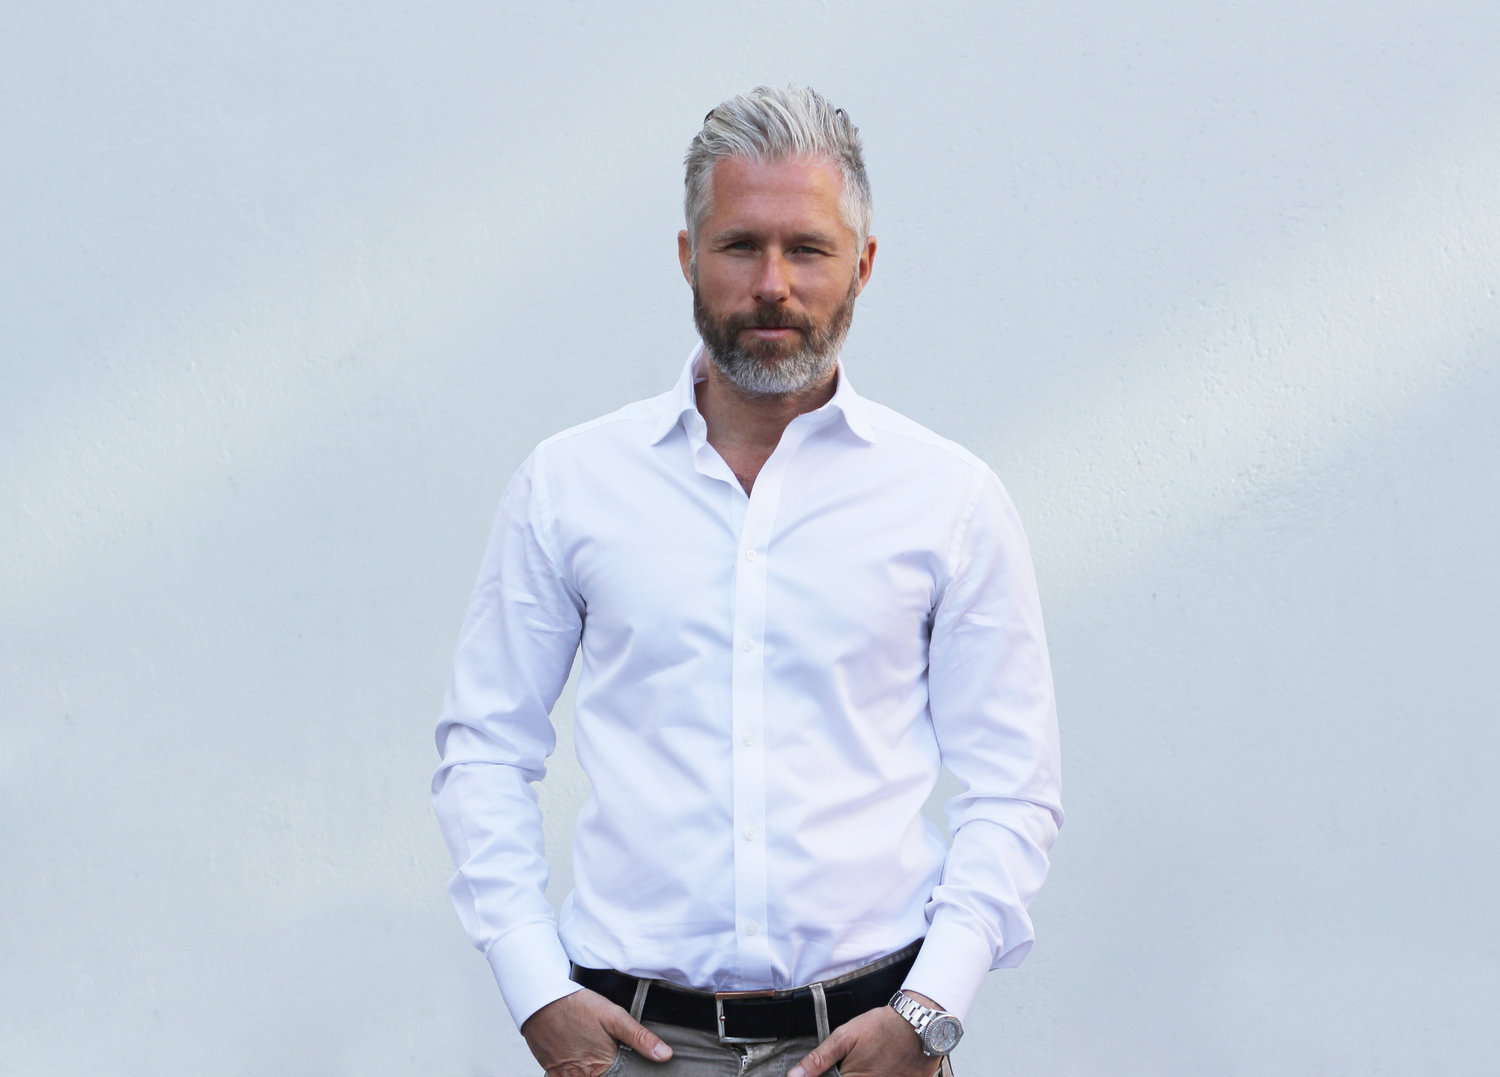 Patrik Wincent - CEO Fondberg & Wincent, authour, therapist.